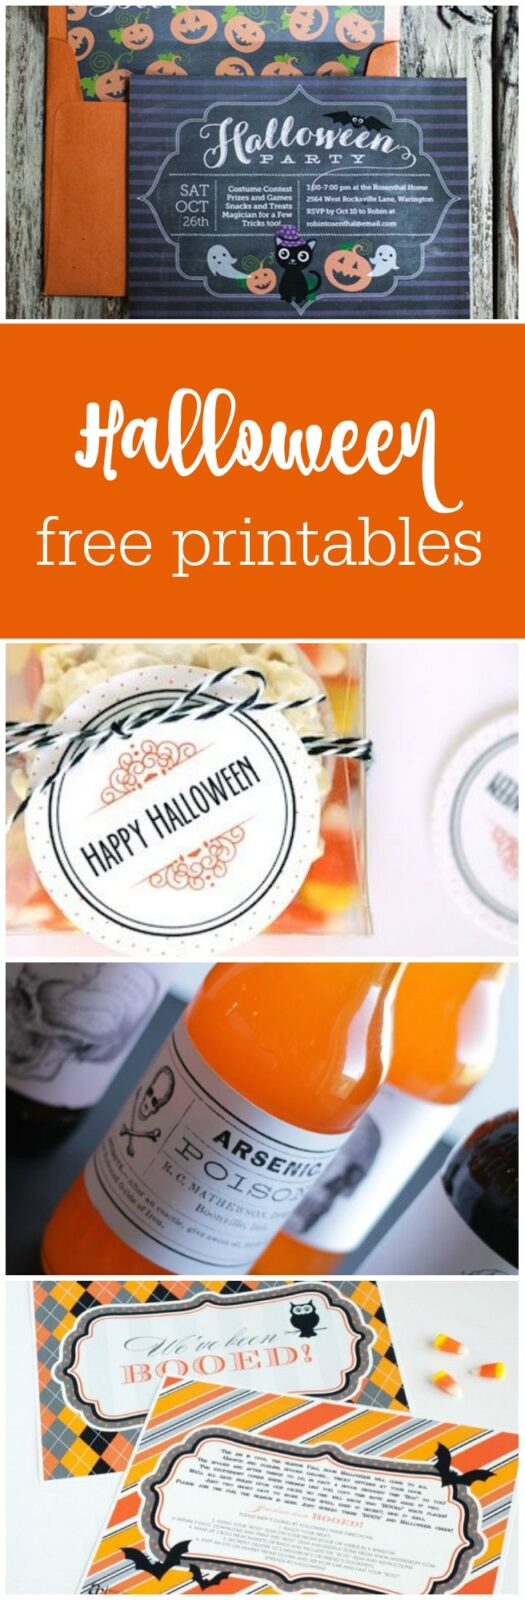 12 Halloween free printables curated by The Party Teacher